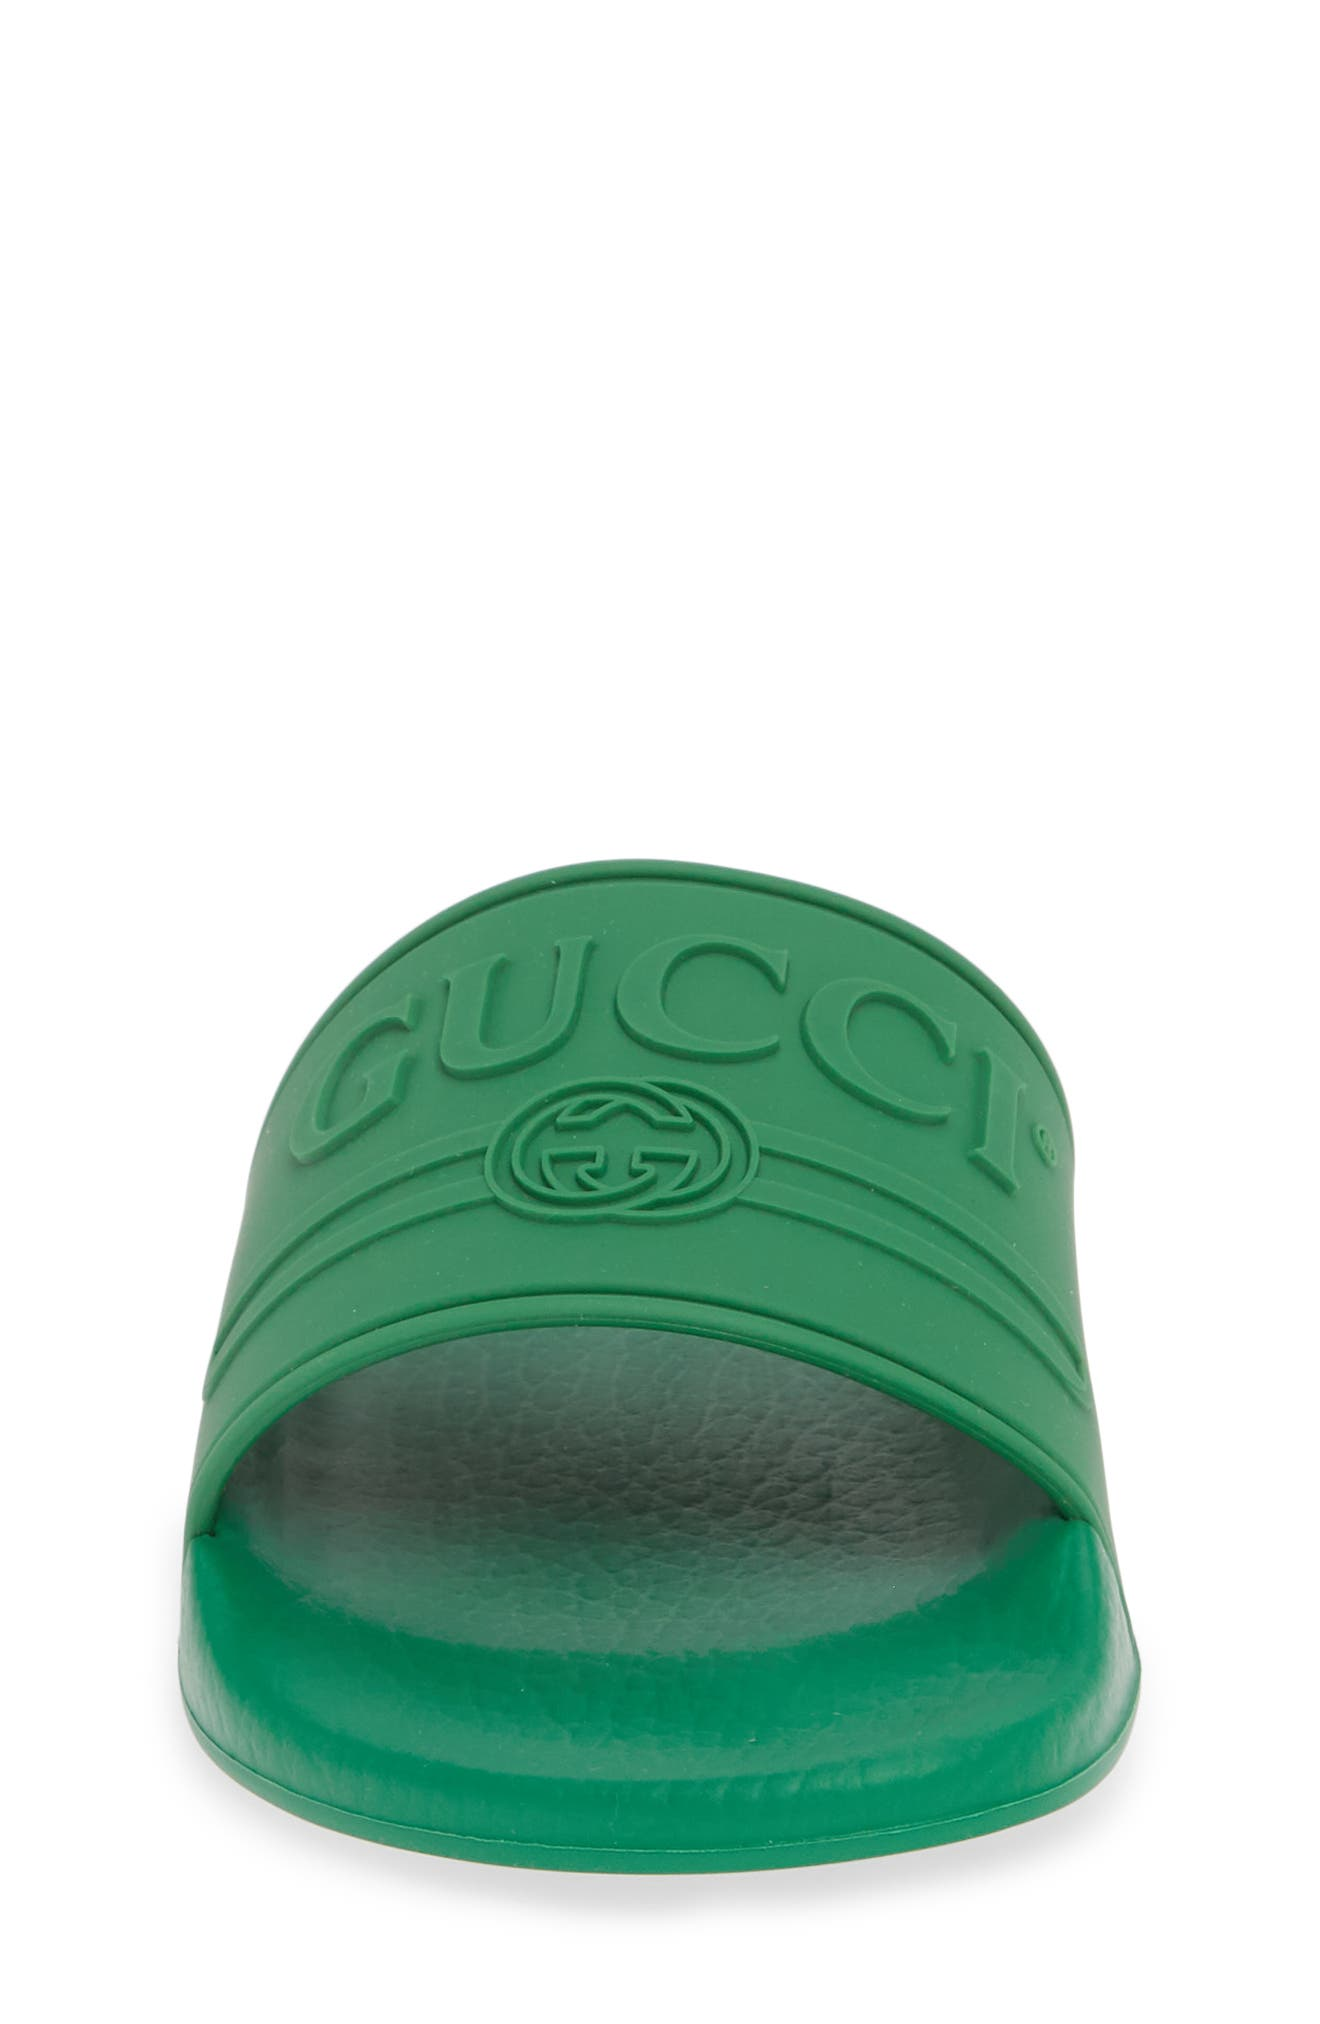 GUCCI, Pursuit Logo Slide Sandal, Alternate thumbnail 4, color, SHAMROCK